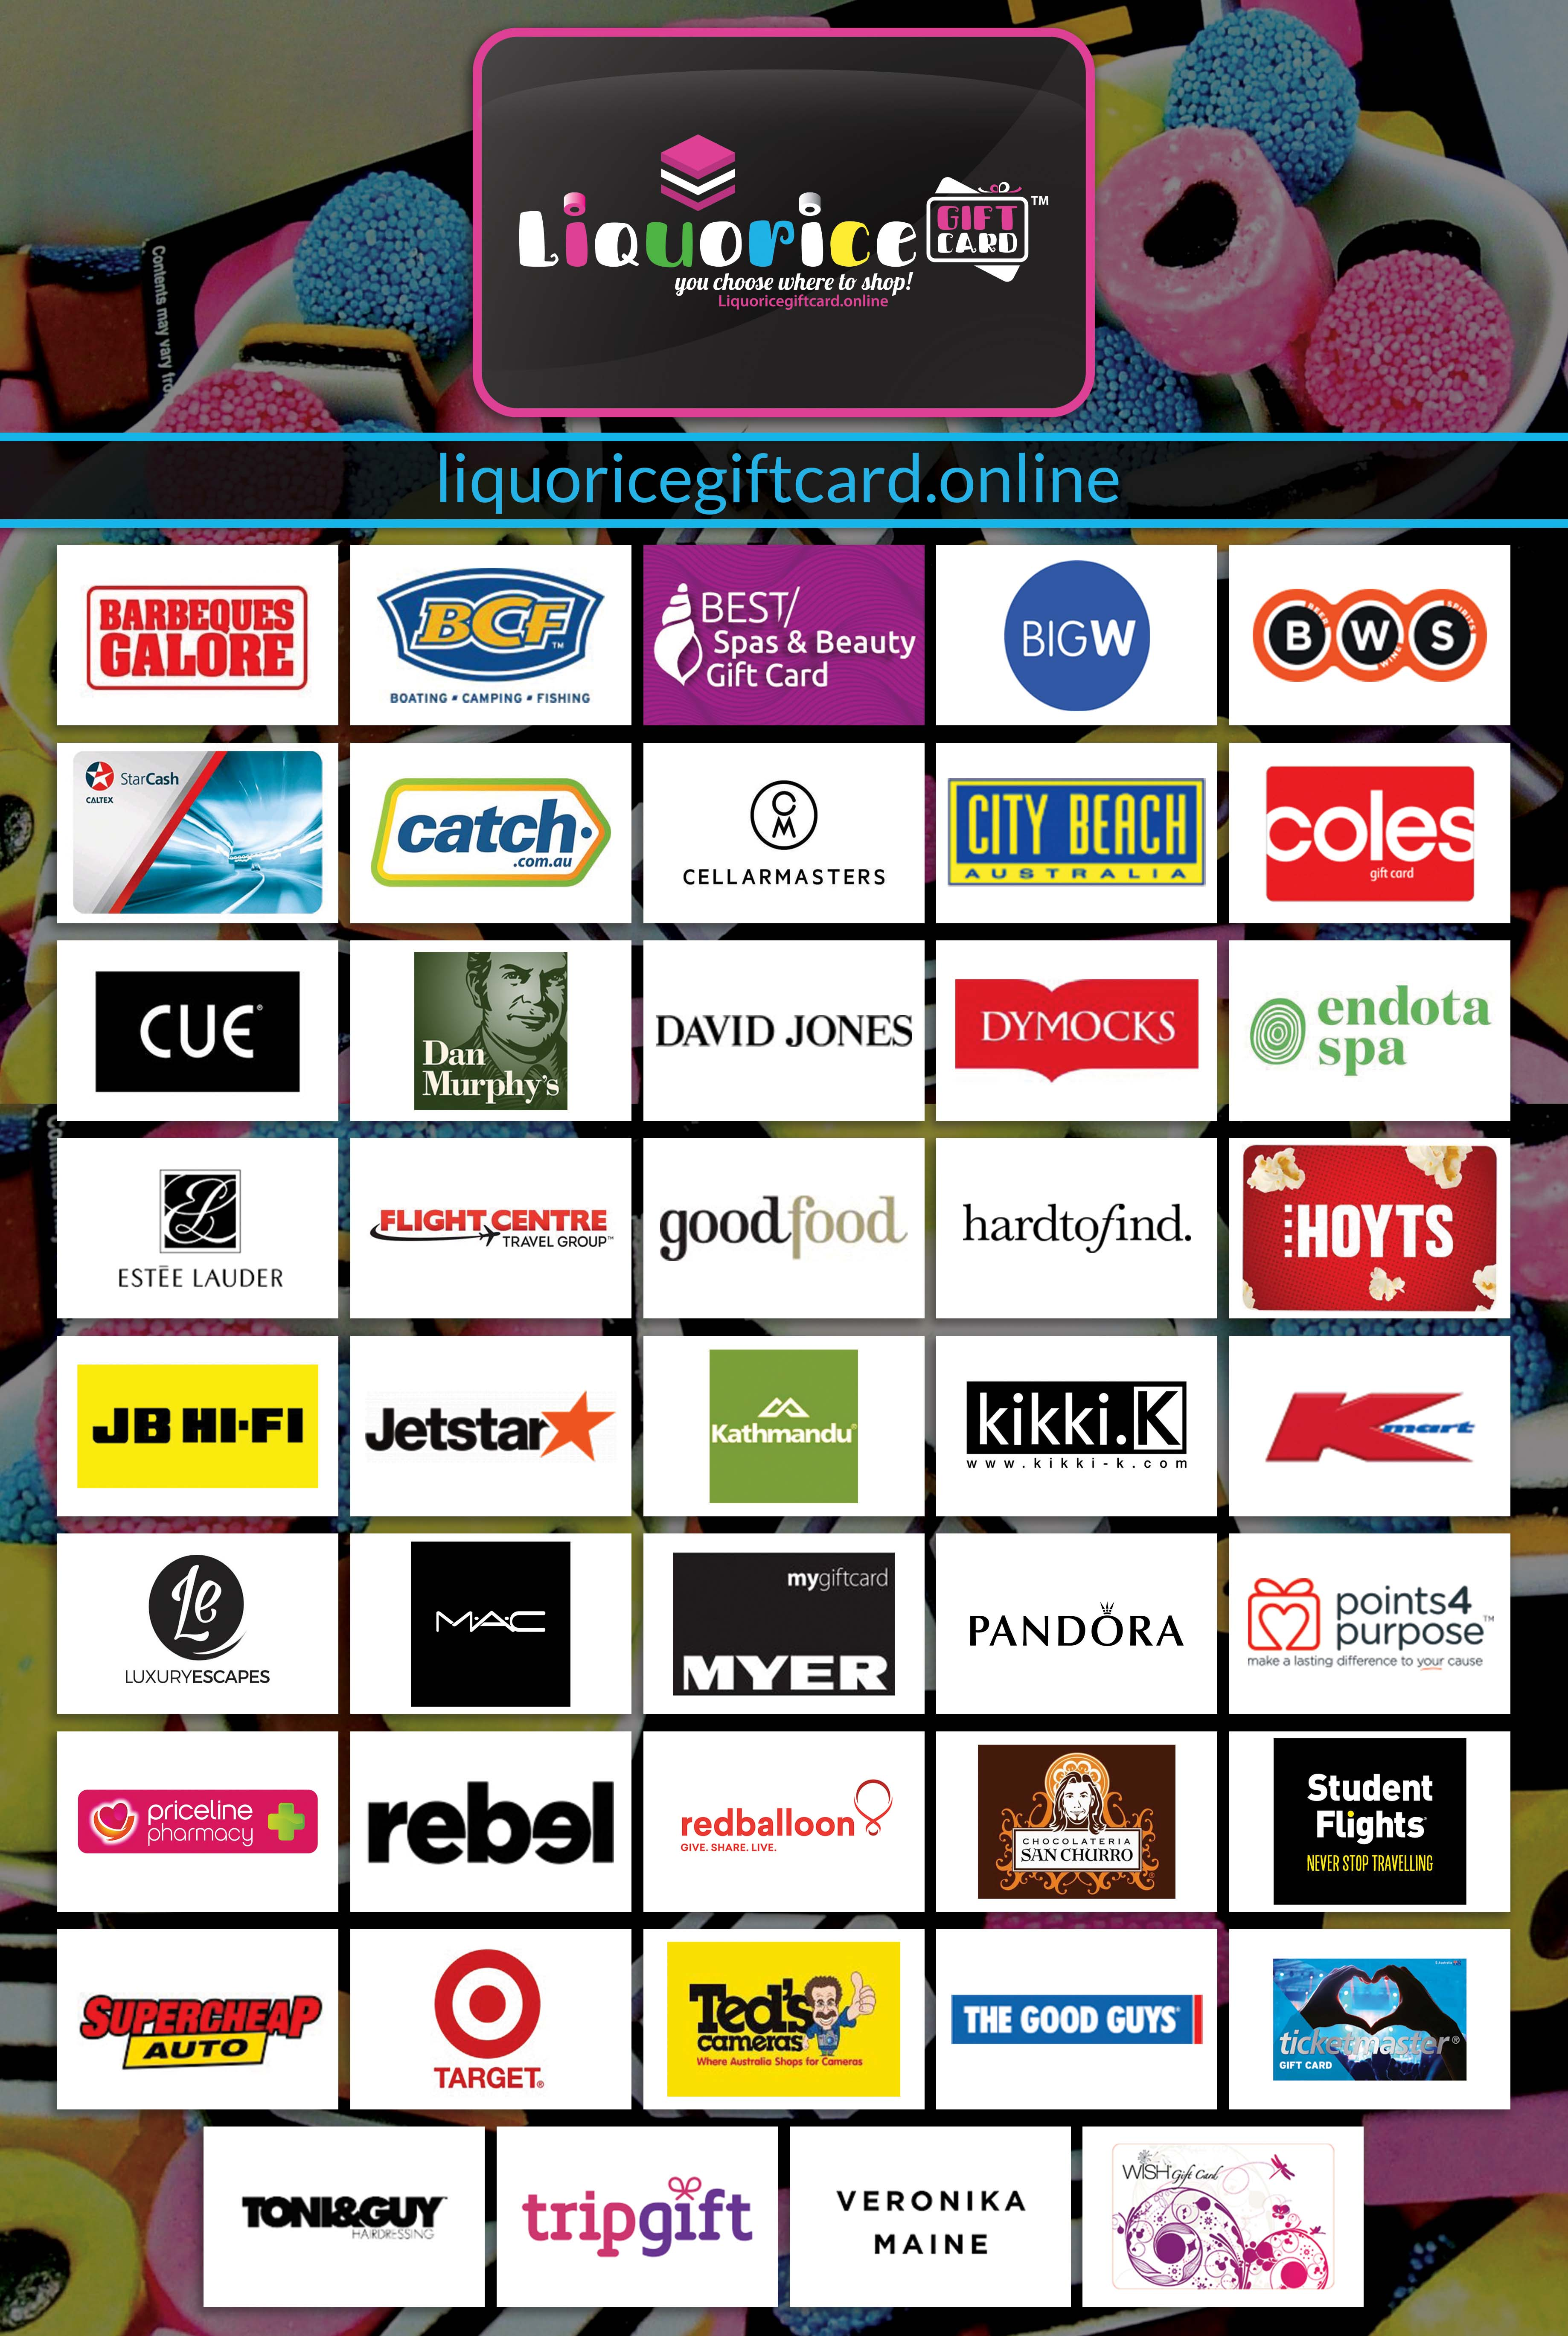 Liquorice Gift Card - You choose where to shop!